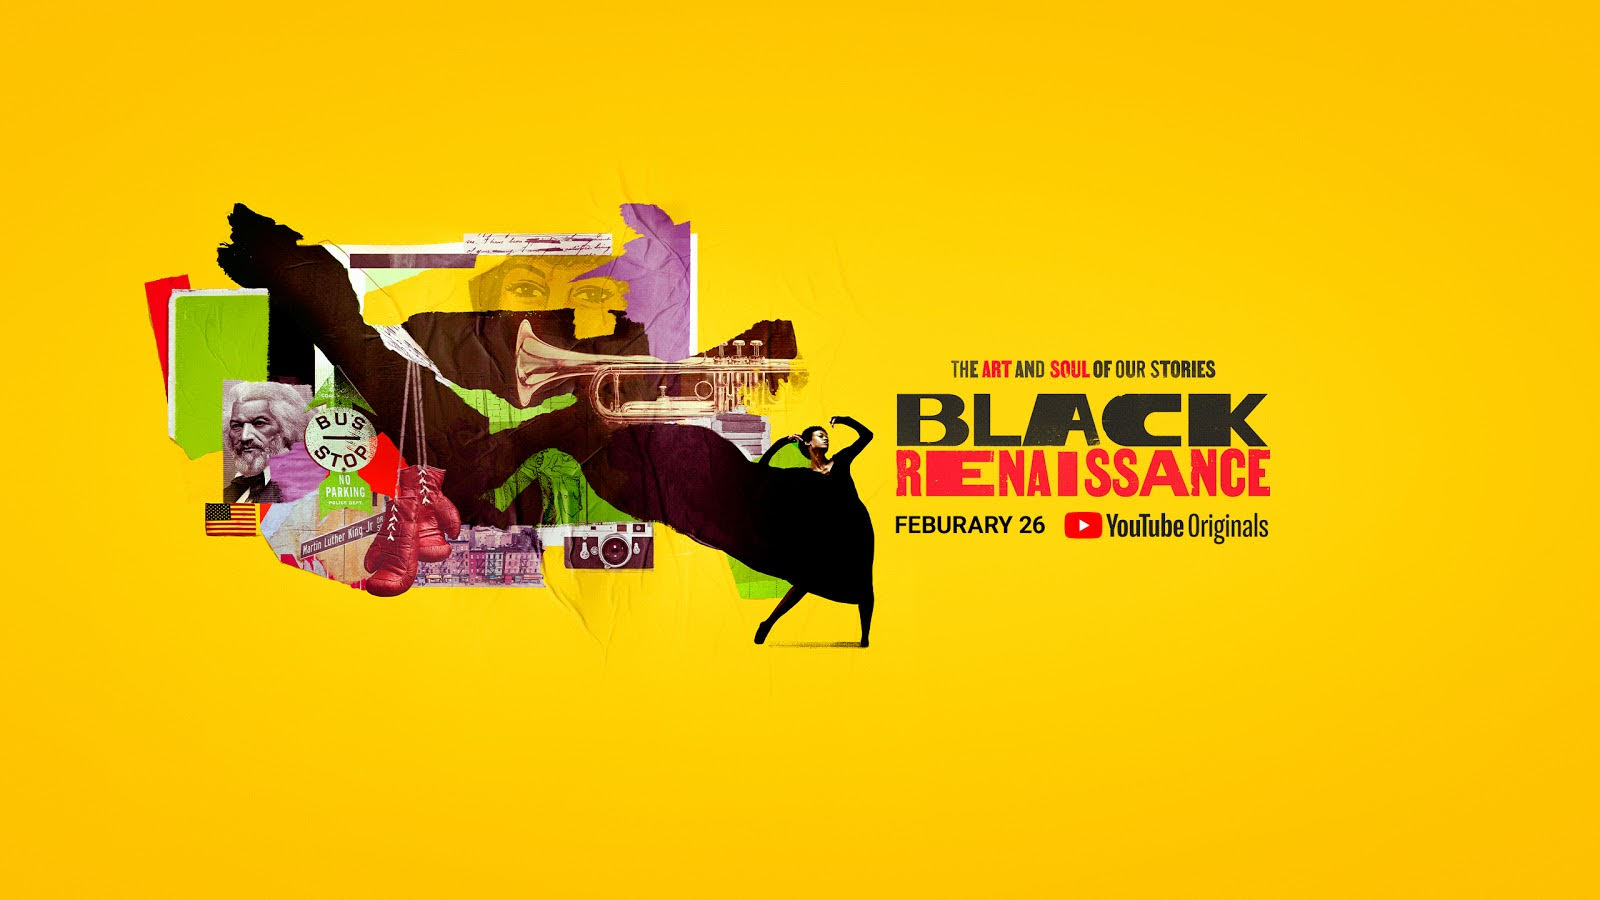 YouTube Originals Add Stacey Abrams, H.E.R. and More to 'Black Renaissance' Special